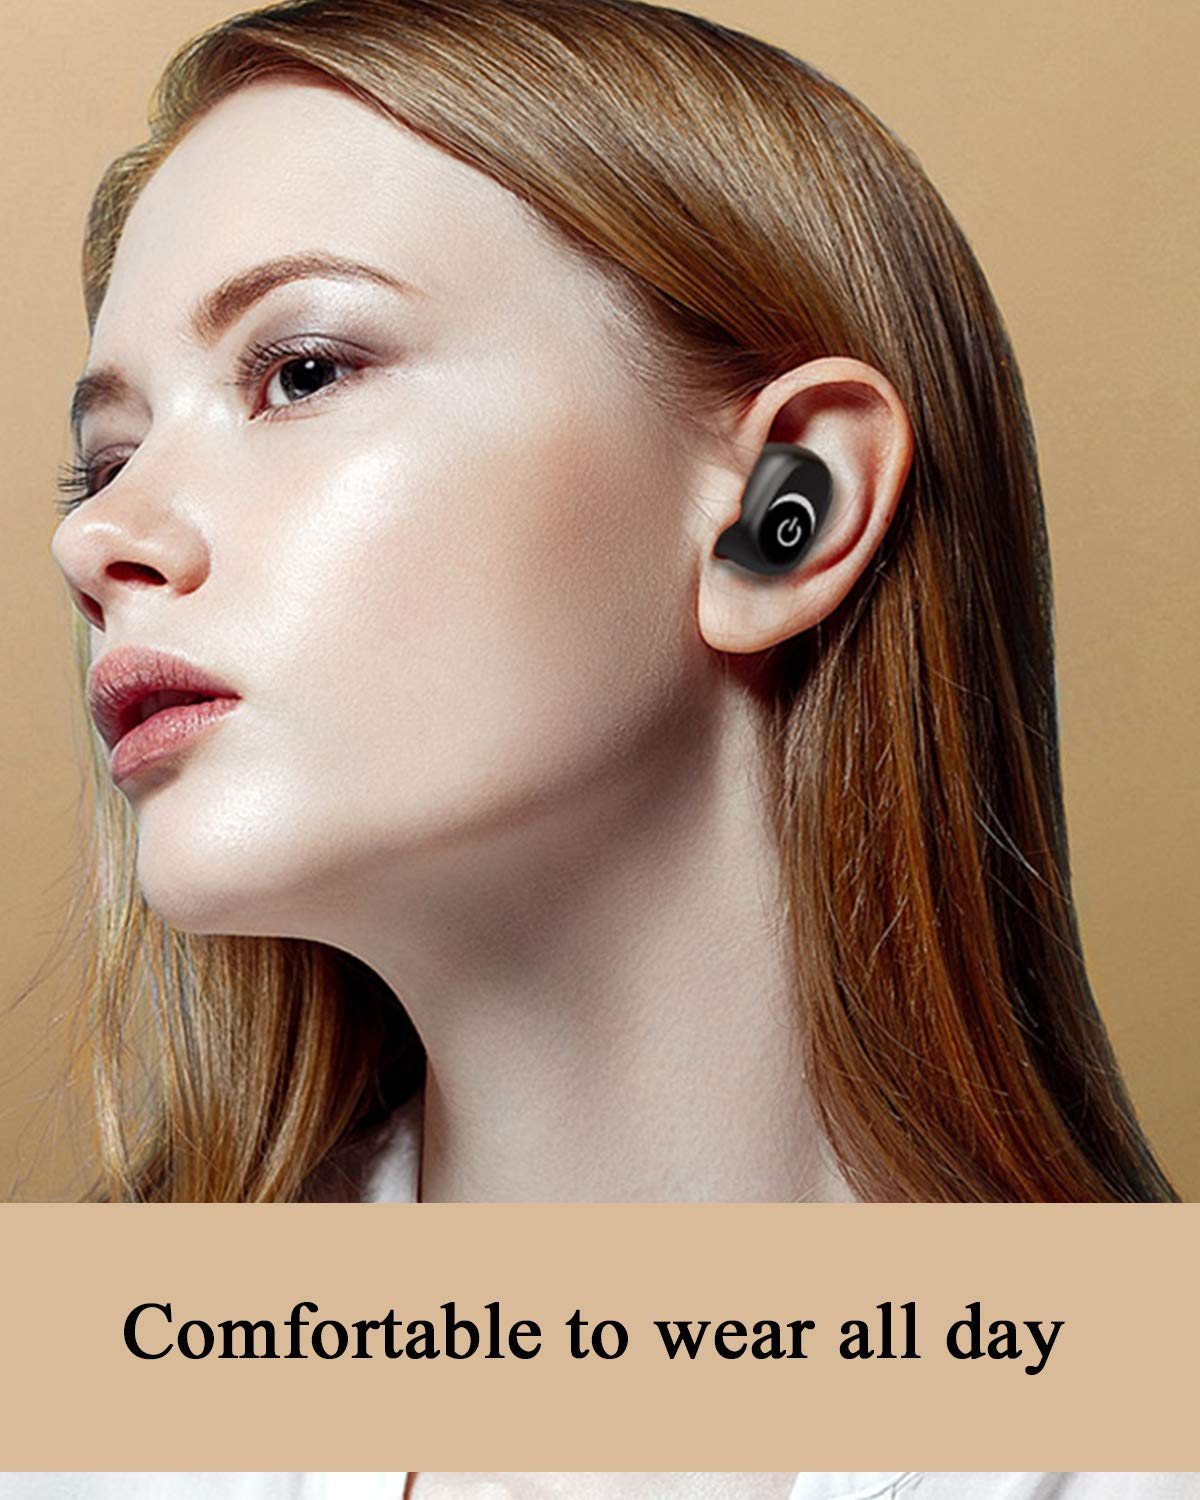 Bluetooth 5.0 Wireless Earbuds HiFi Stereo Noise Canceling Earphones with 1800mAh Charging Case Supports iPhone Android Voice Assistant (Black)